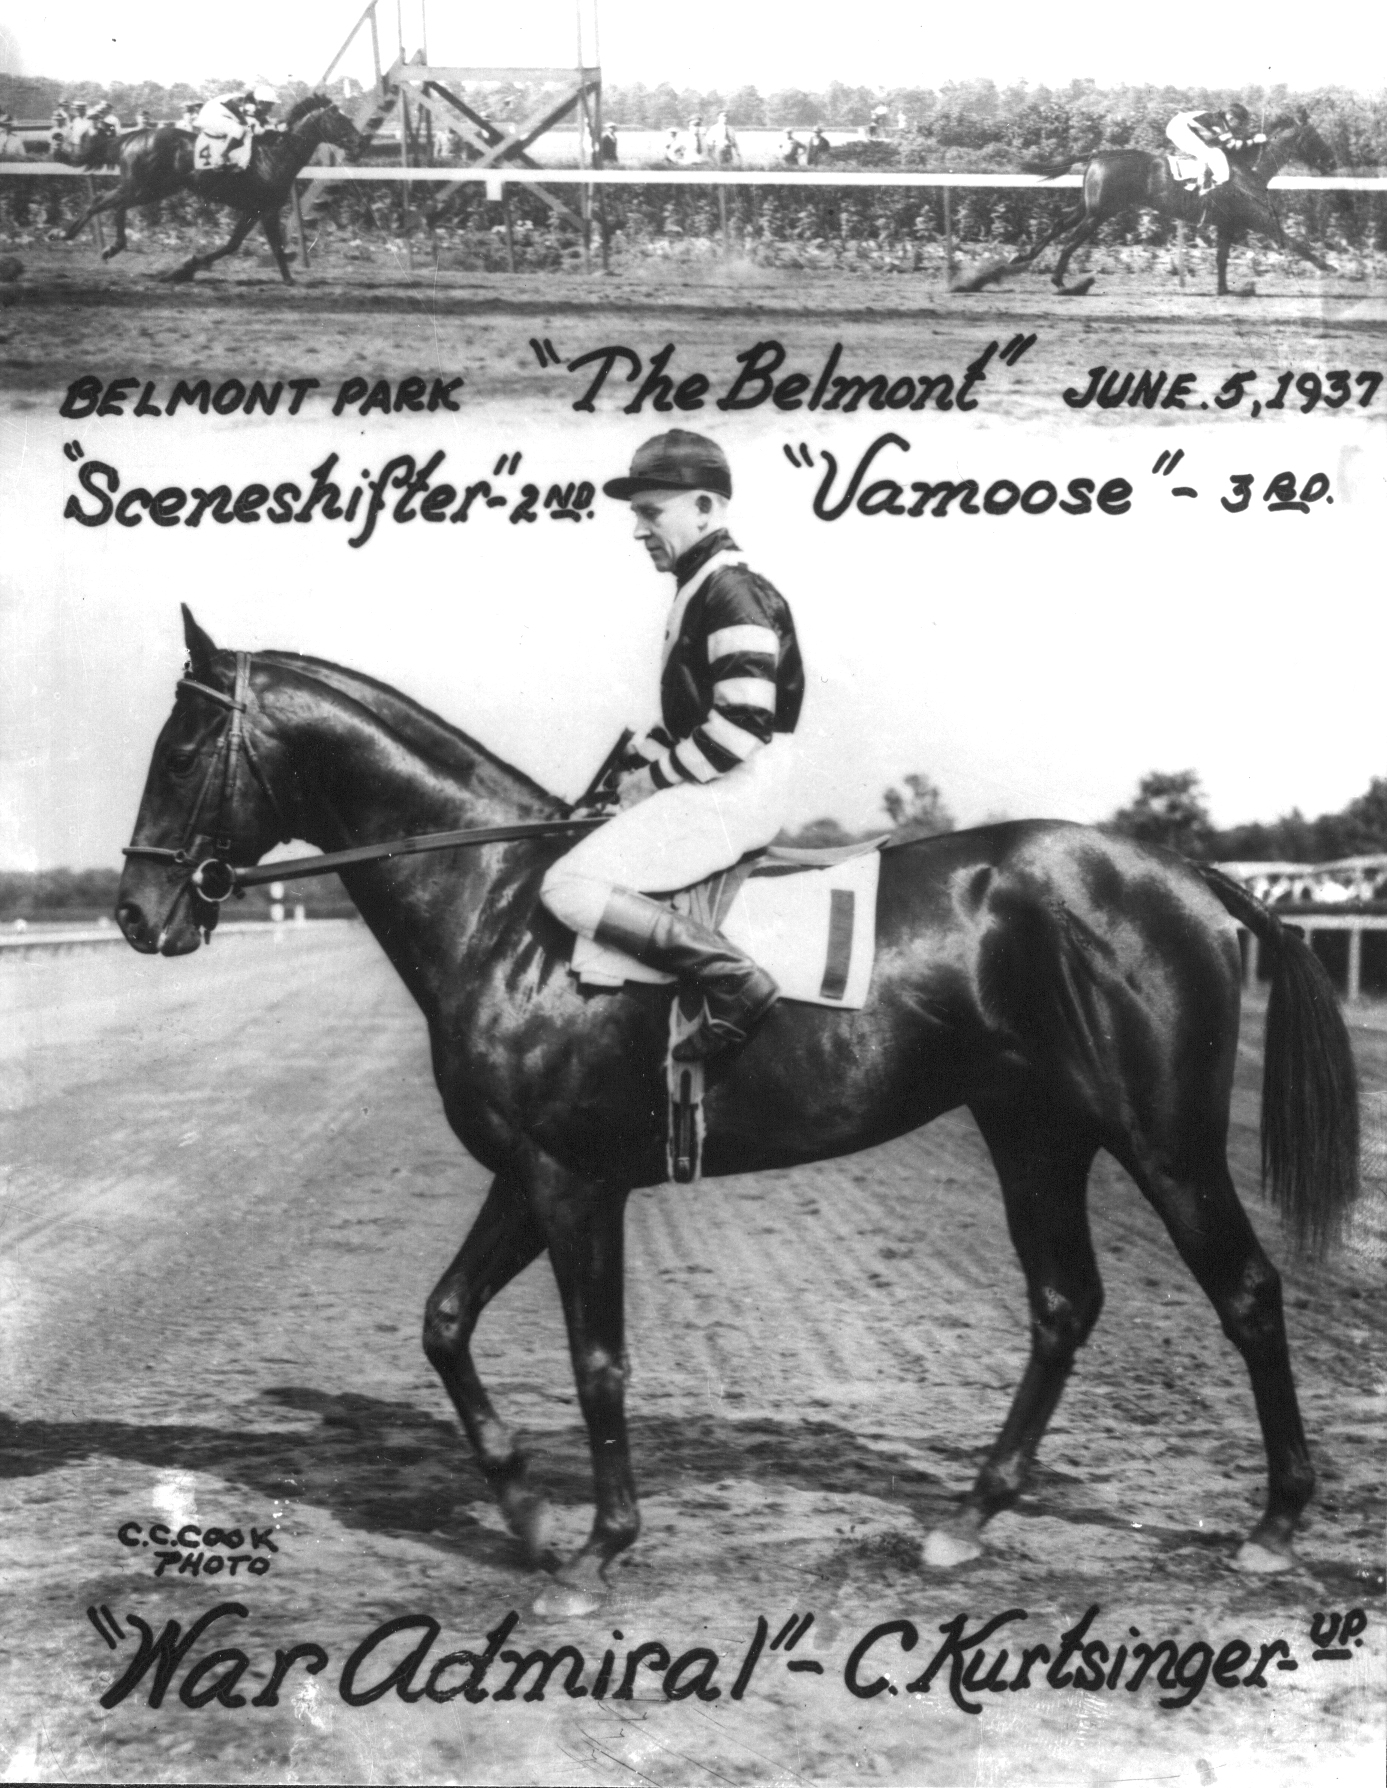 Keeneland Library Cook Collection - 5877 - 6.5.1937 War Admiral, C Kurtisnger up, at Belmont Stakes